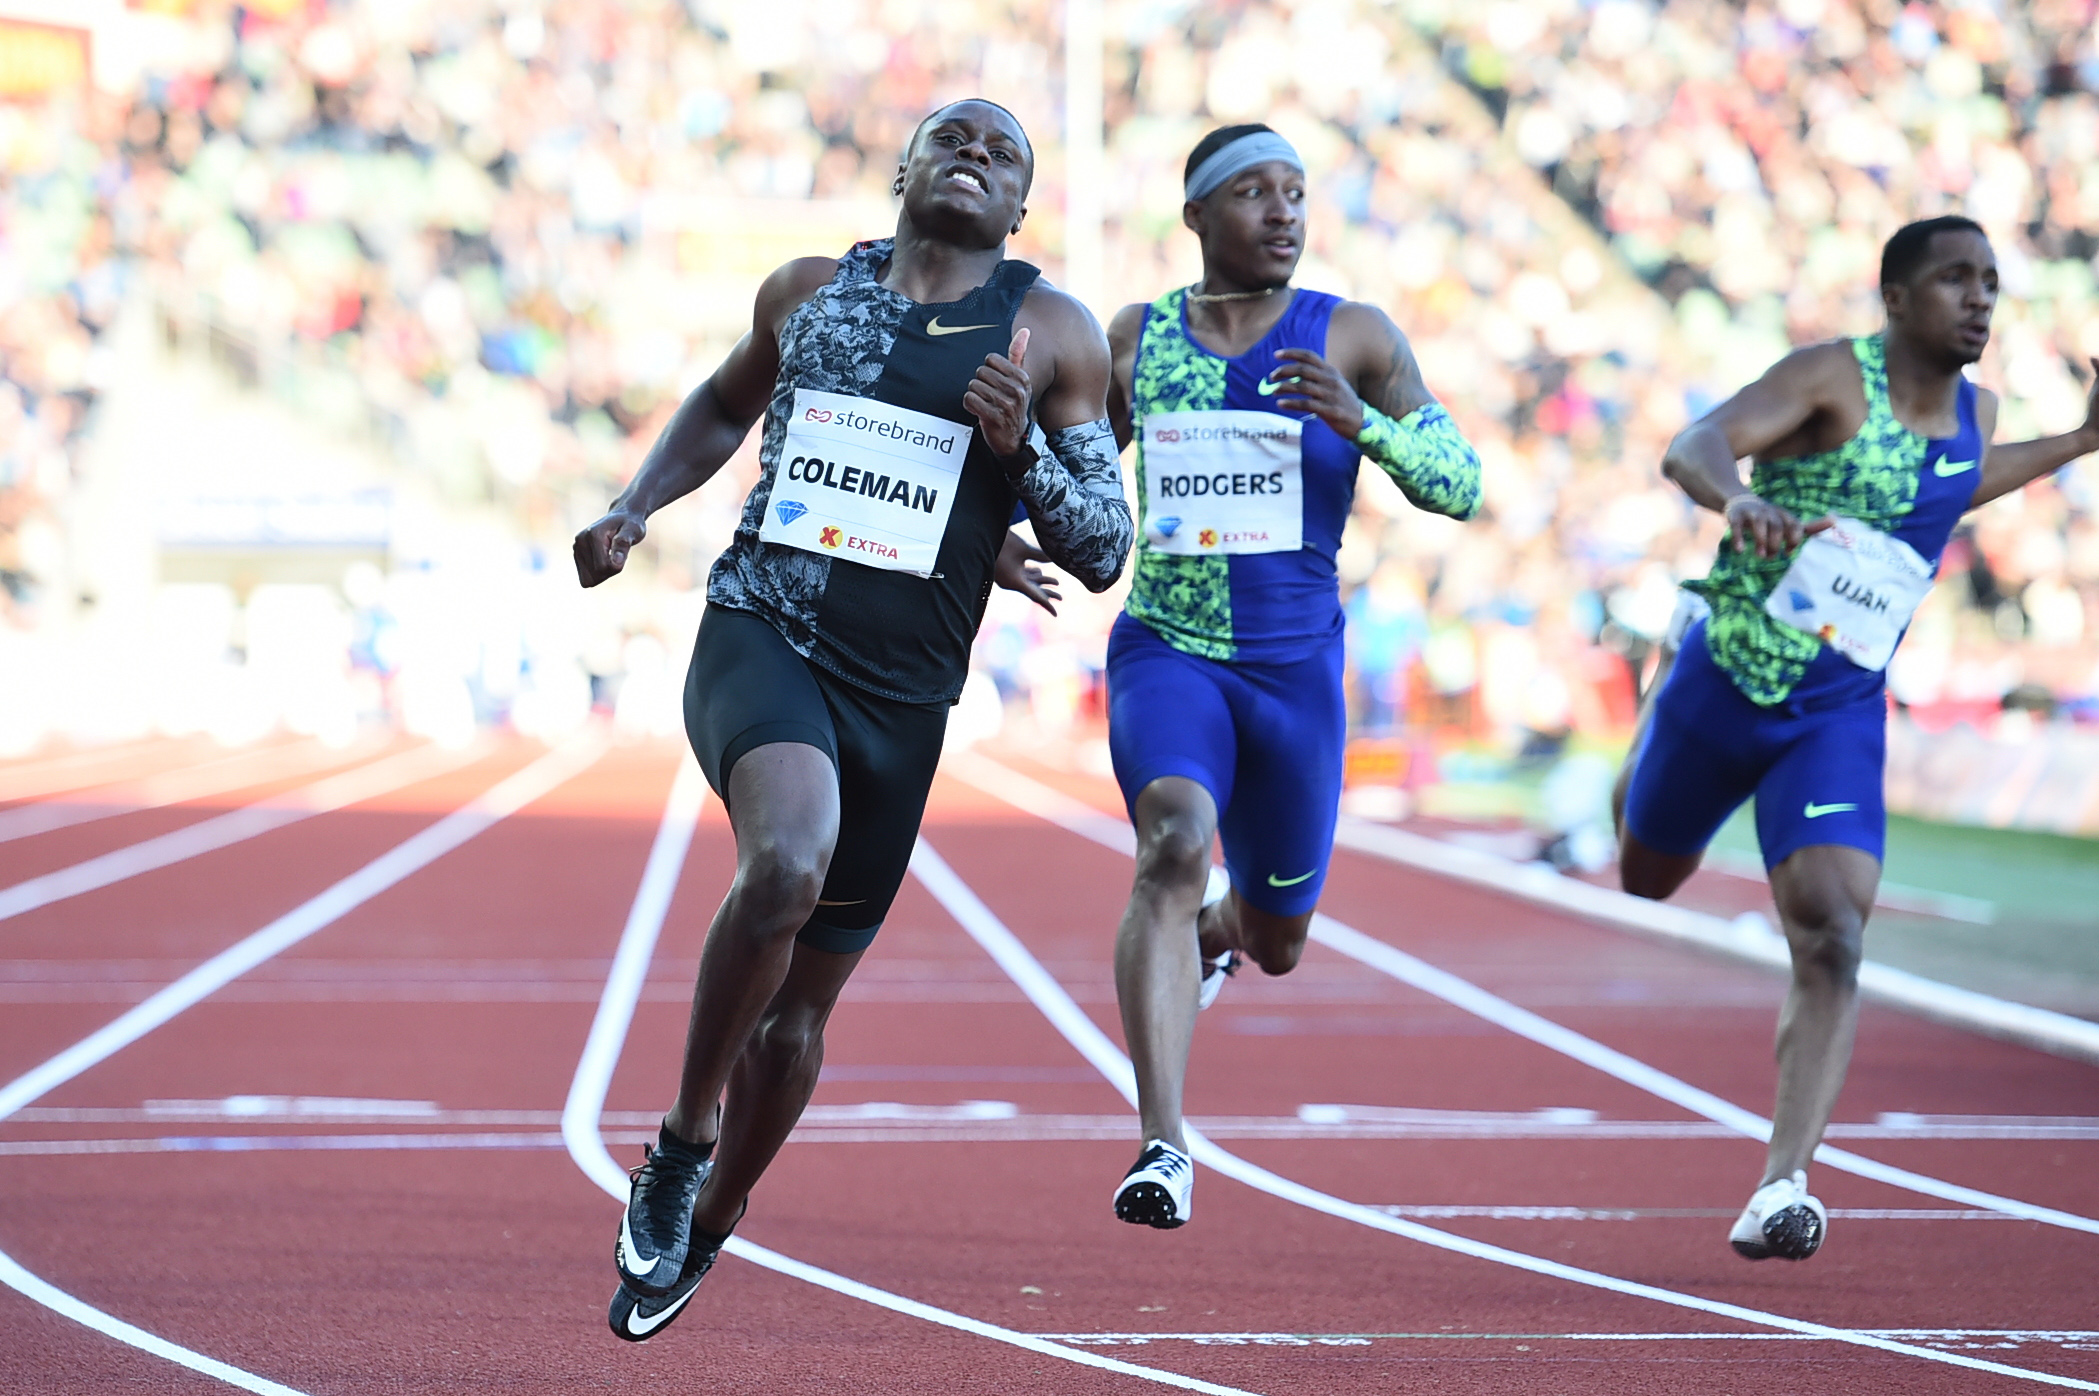 Track and Field: 54th Bislett Games